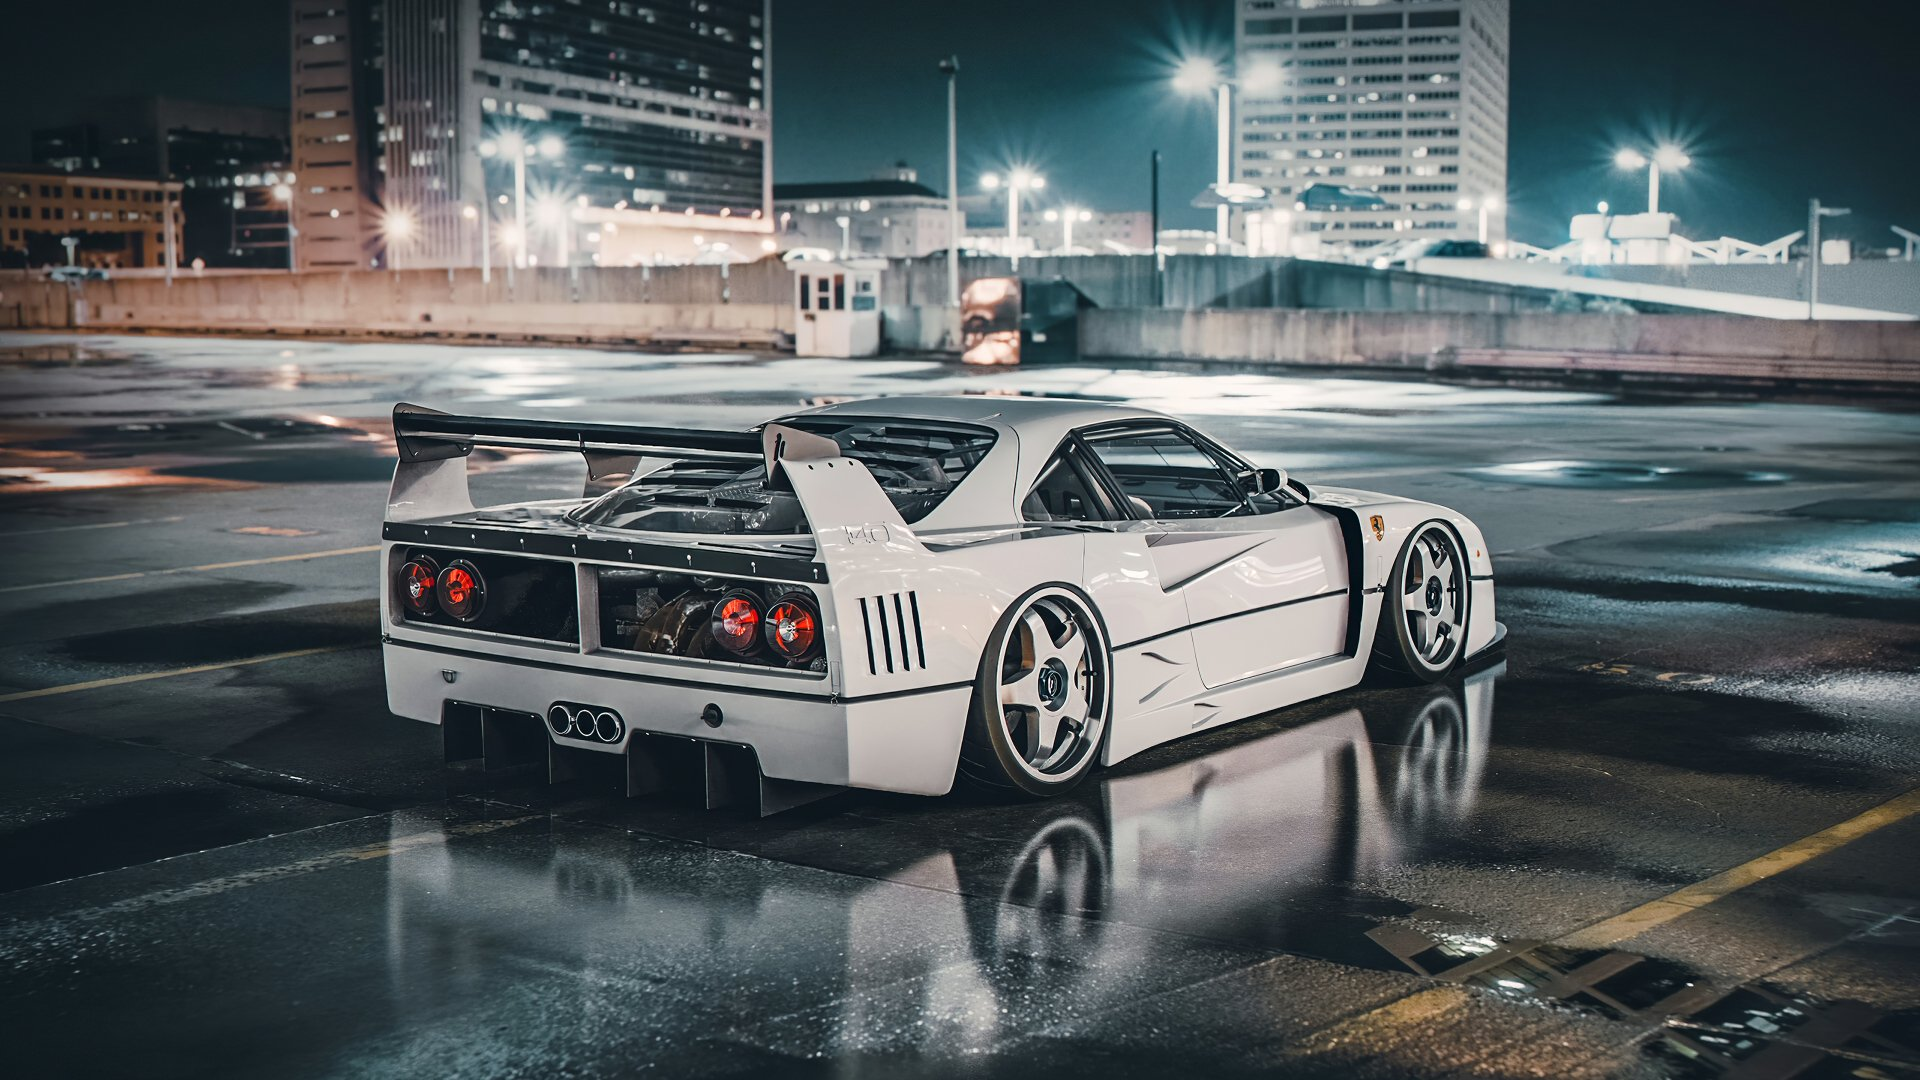 4 Ferrari F40 Lm Hd Wallpapers Background Images Wallpaper Abyss